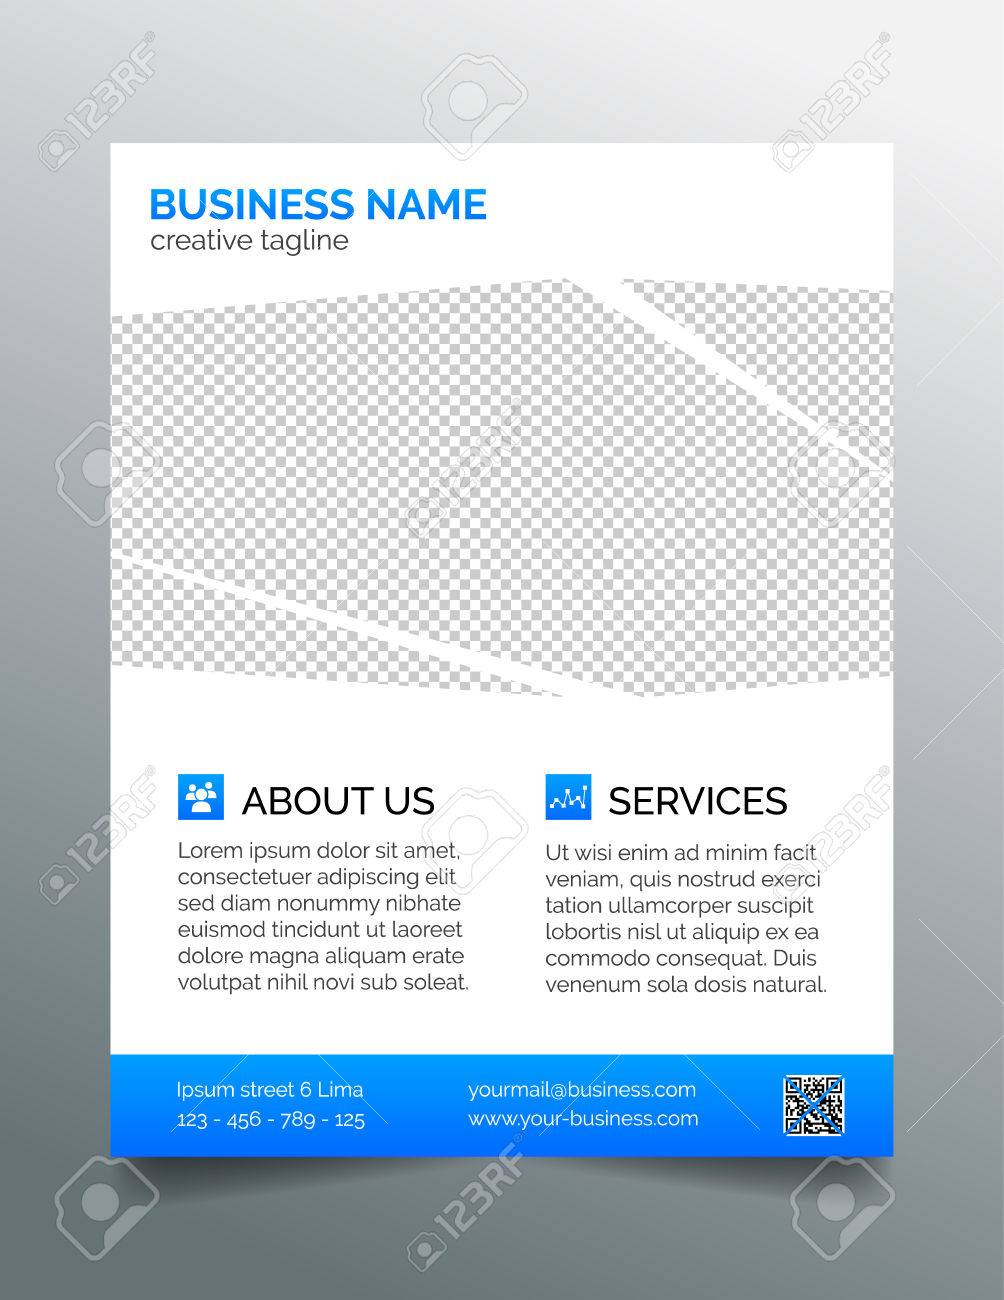 corporate business flyer template light blue design royalty corporate business flyer template light blue design stock vector 39142450